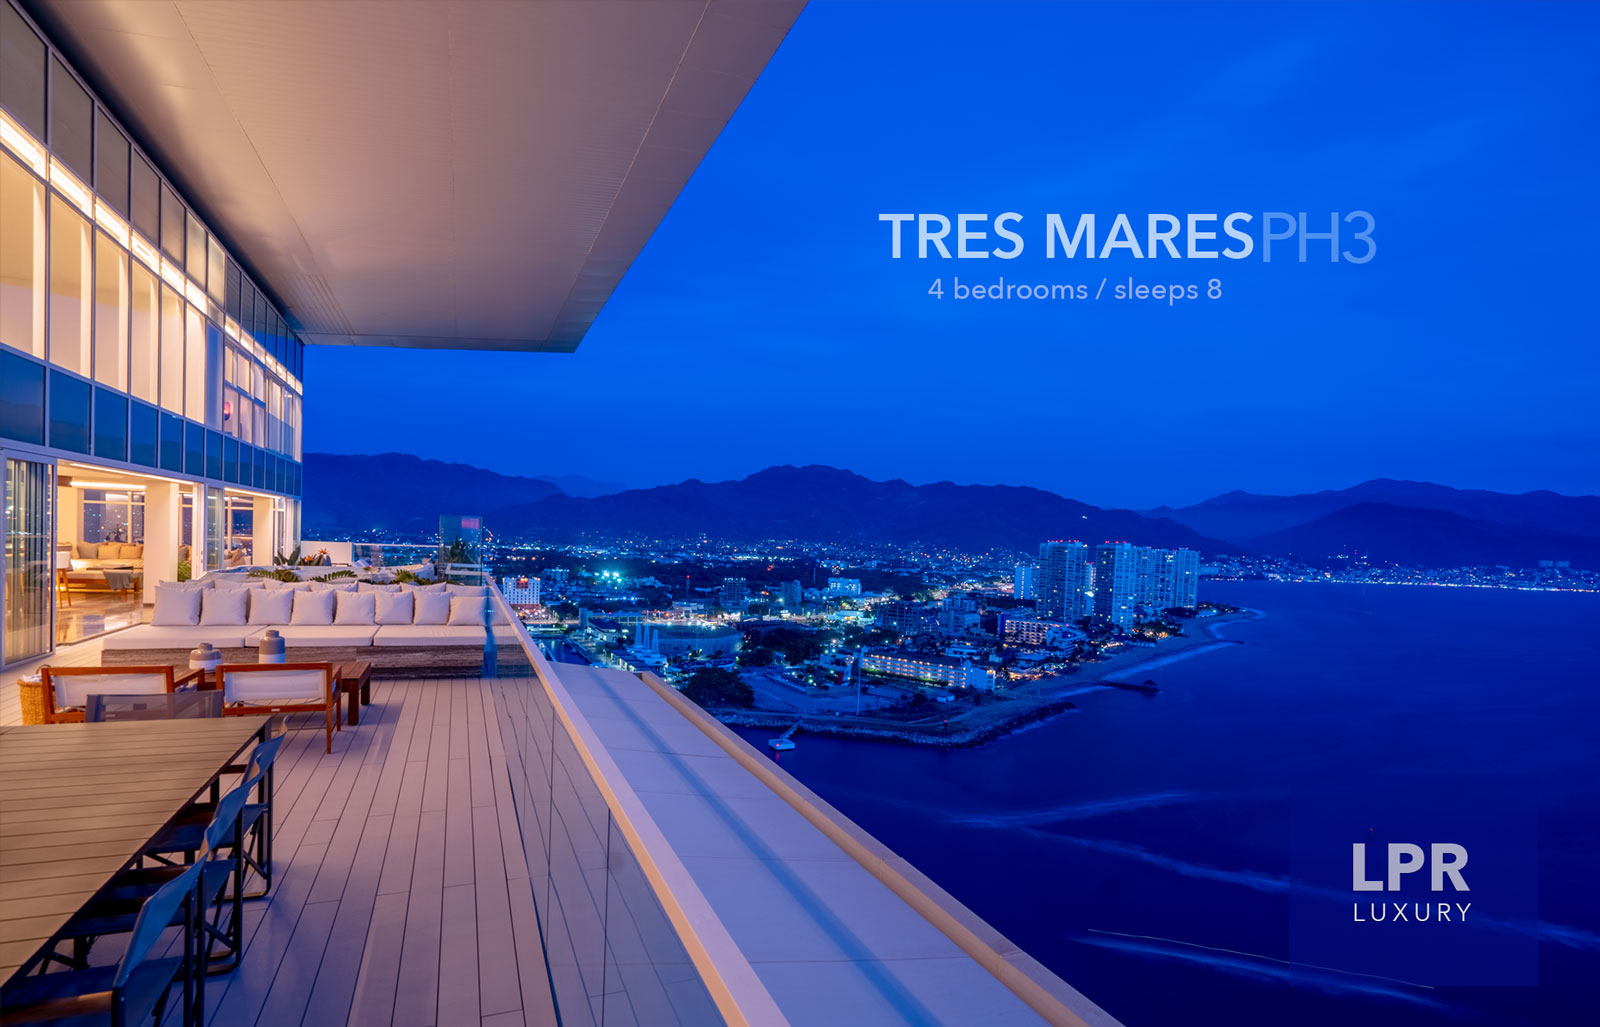 The Queen Penthouse at Tres Mares - Luxury Puerto Vallarta Real Estate and Vacation Rentals Villas